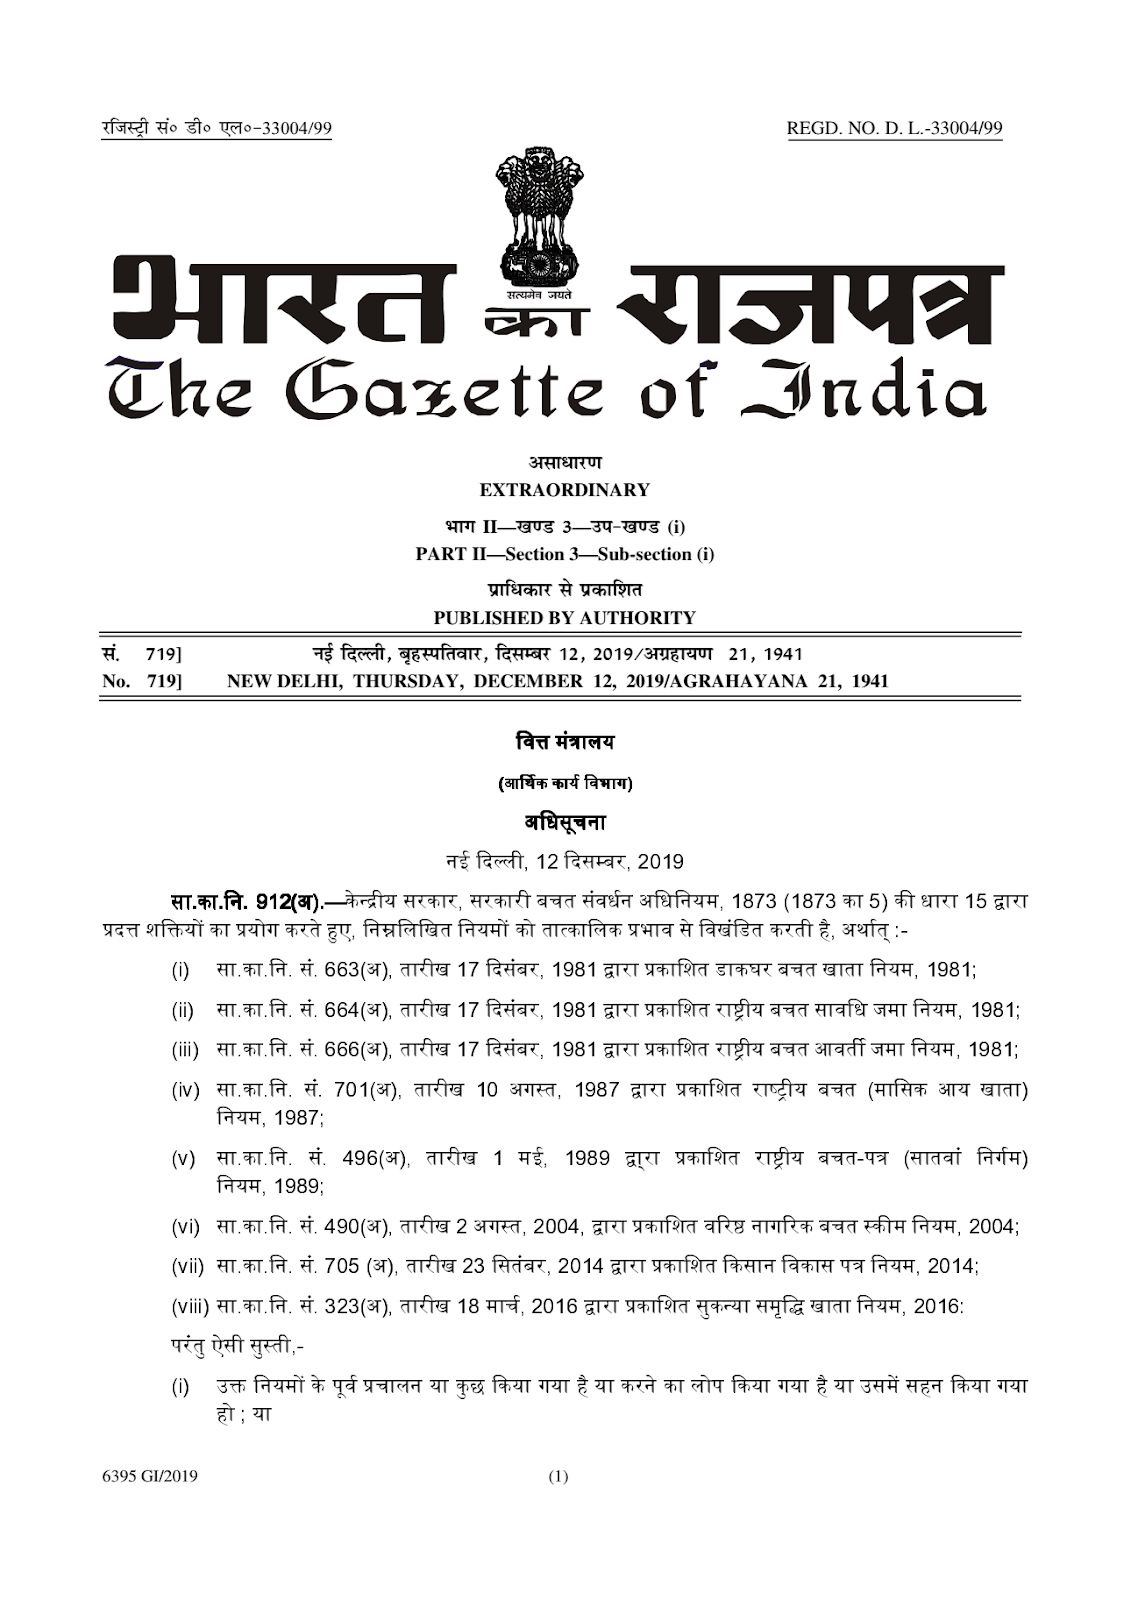 image search result for Gazette Notification dated 12.12.2019